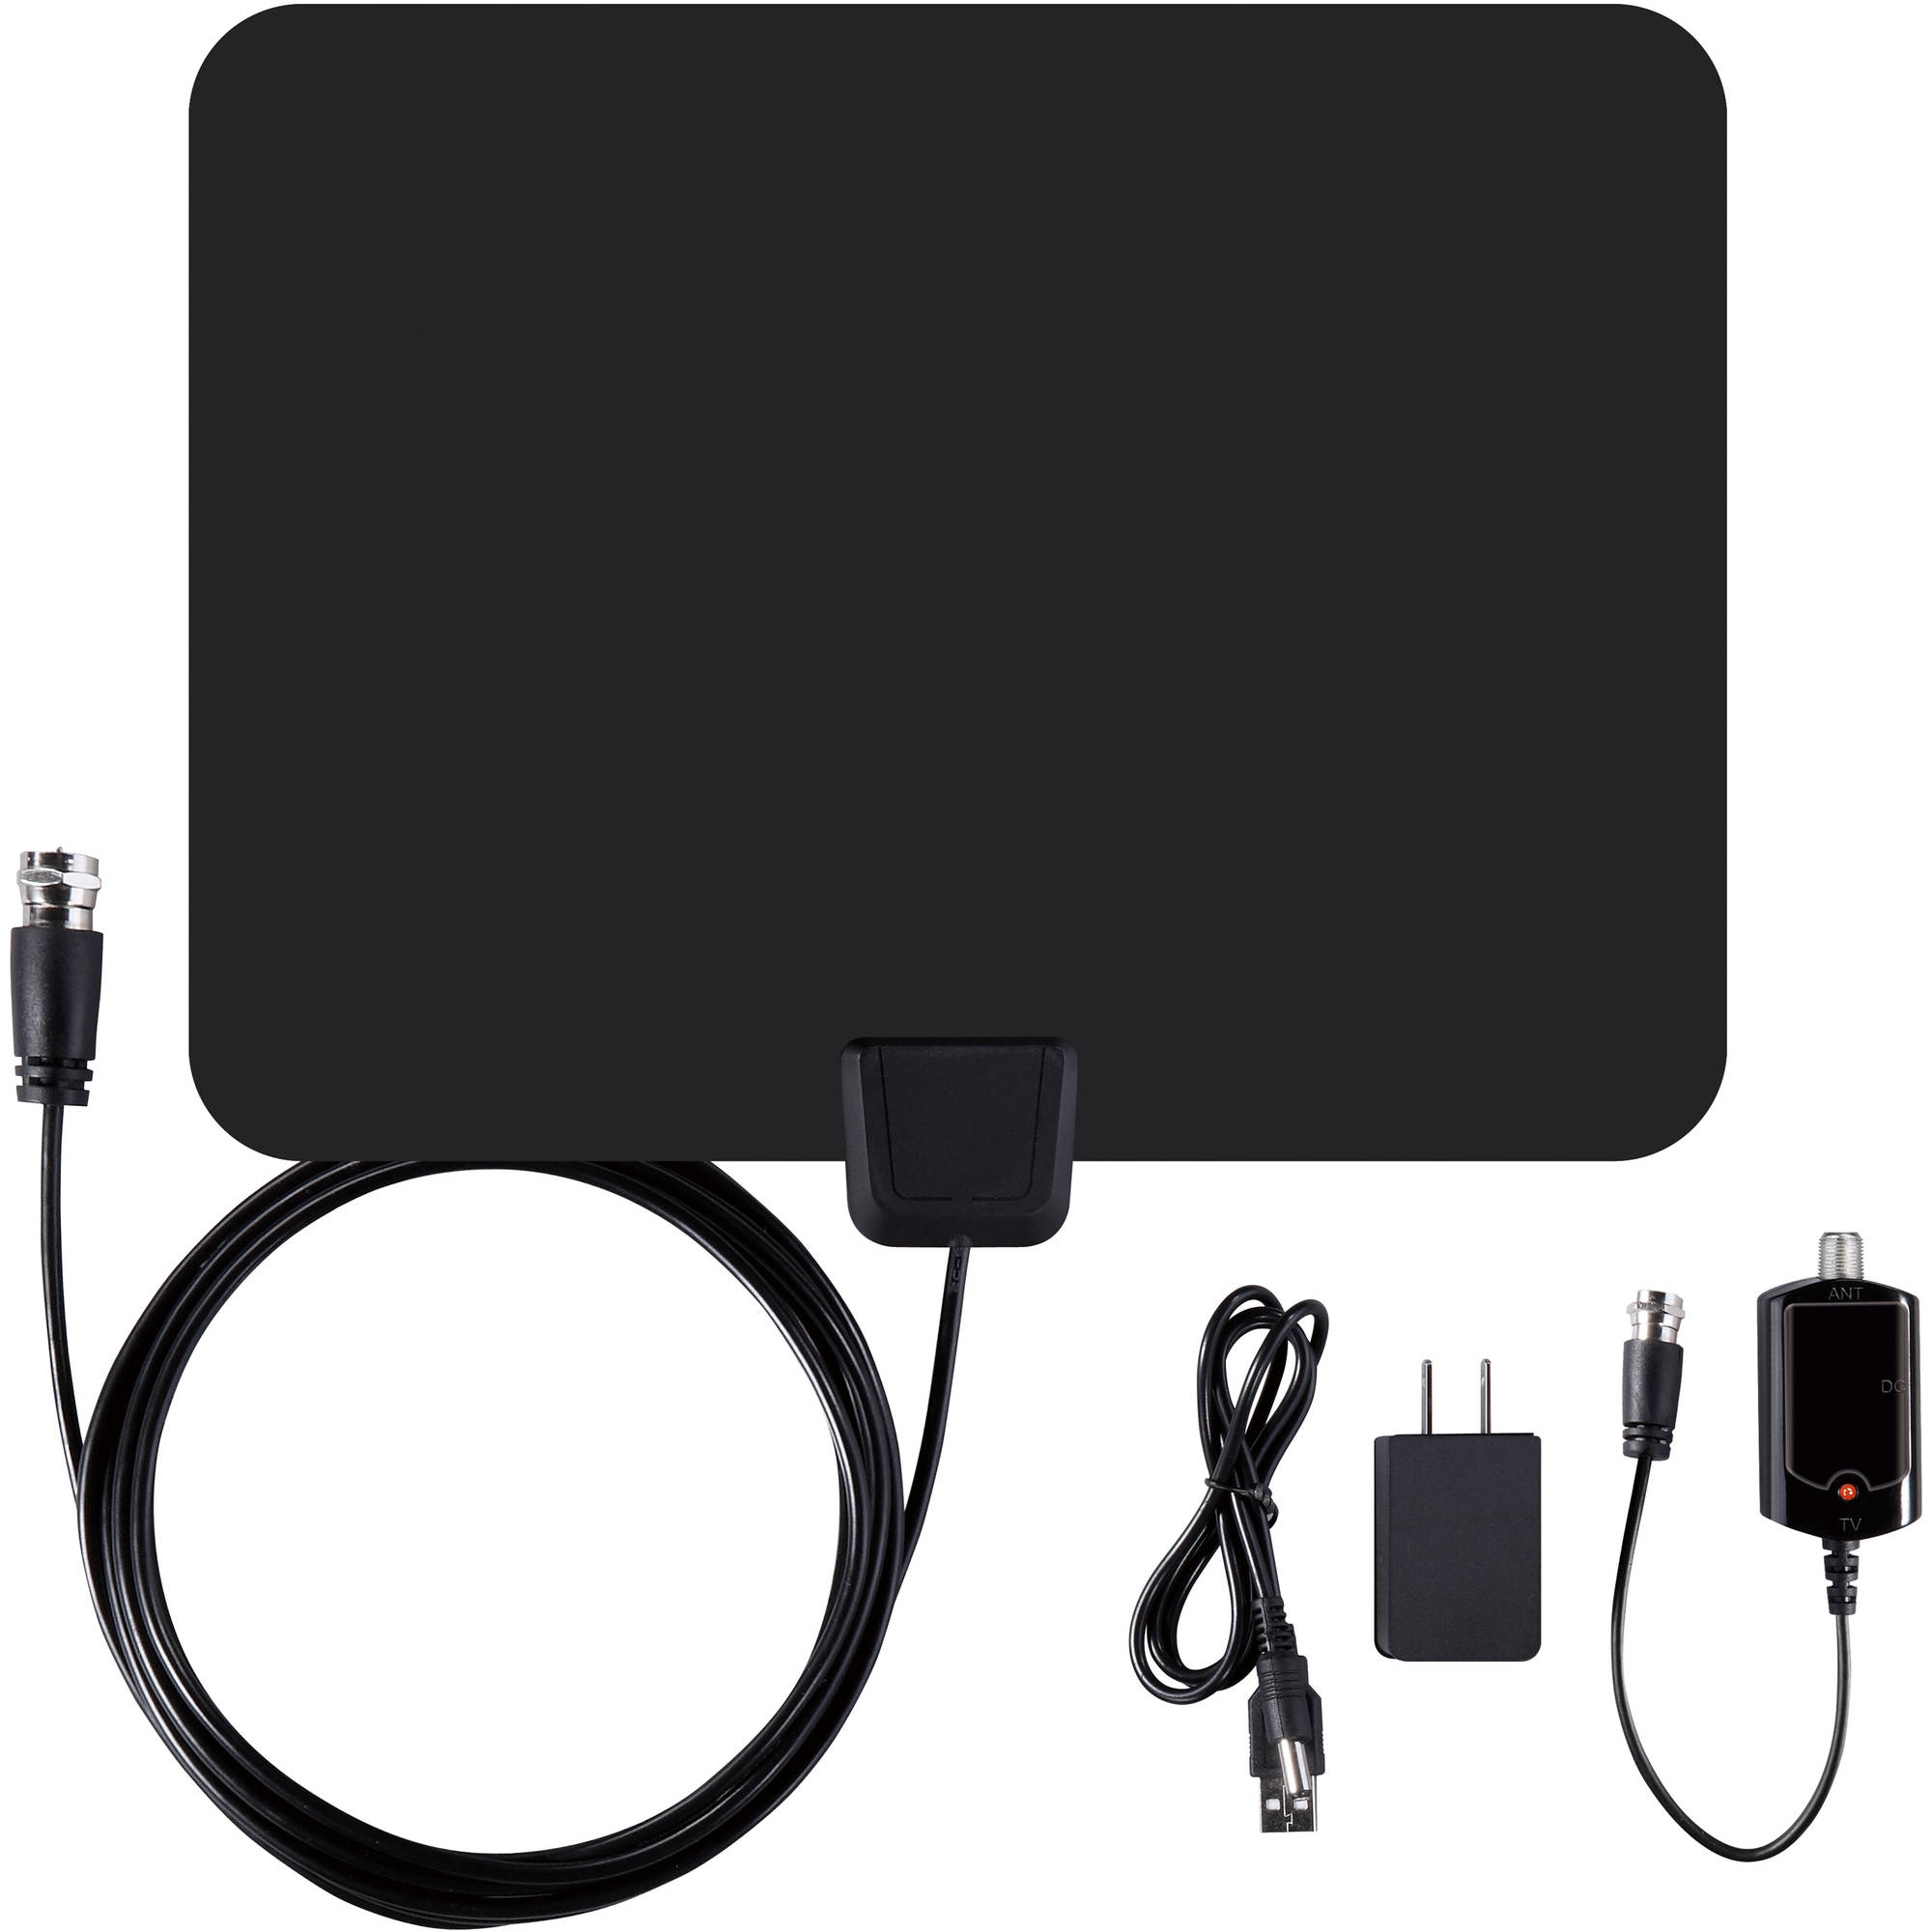 Ematic HDTV Antenna and Amplifier